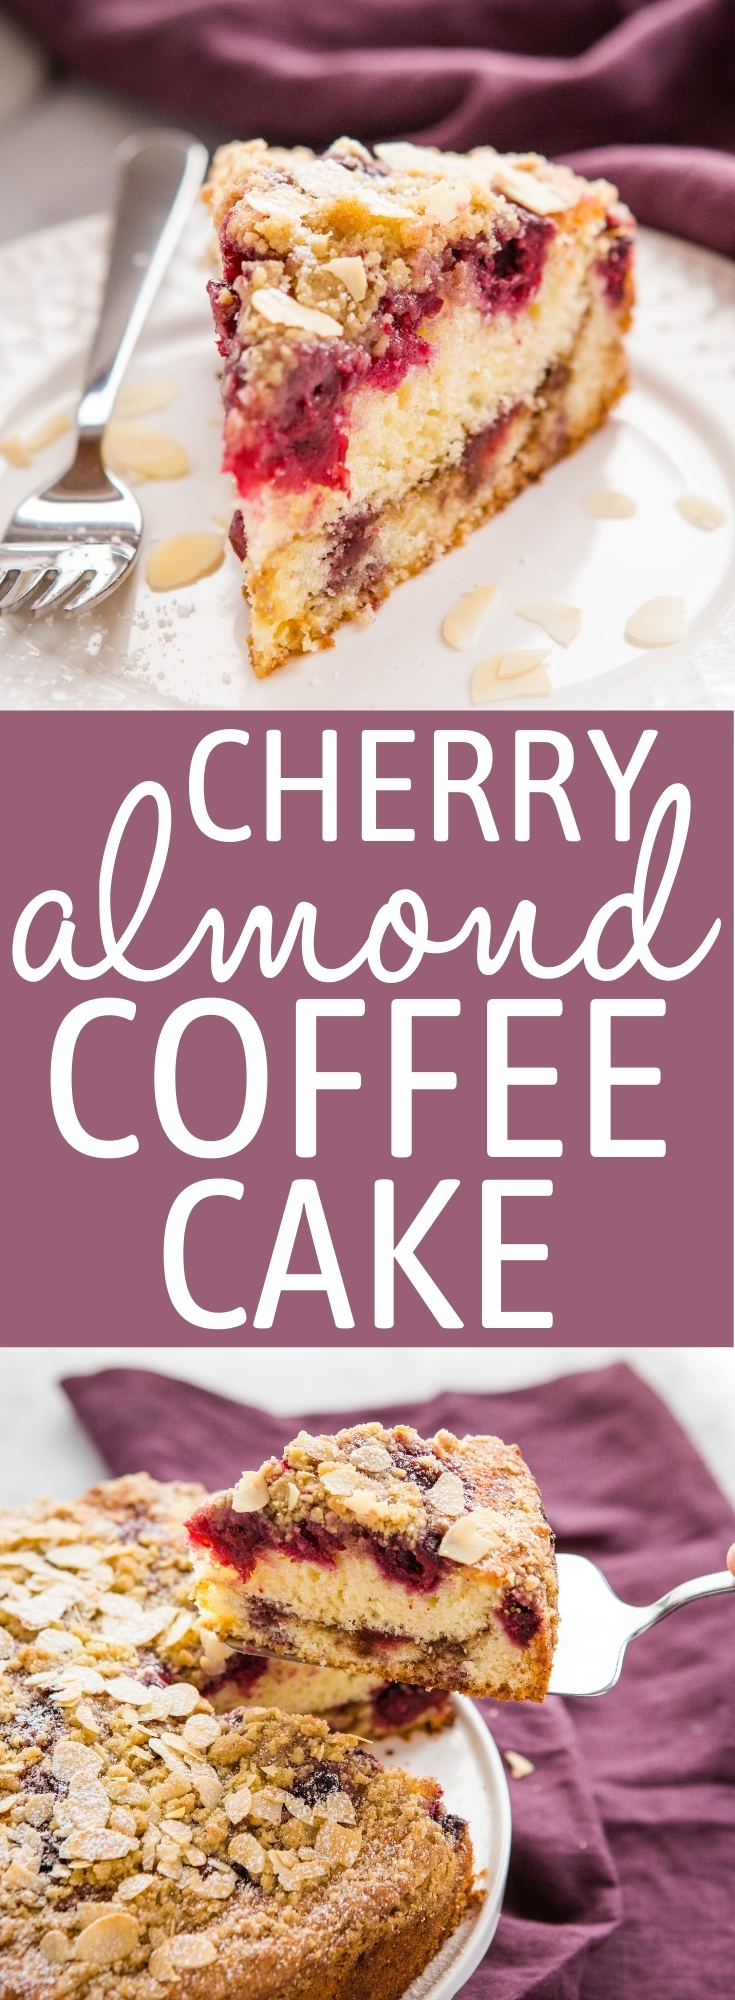 This Cherry Almond Coffee Cake is the perfect moist and fluffy coffee cake packed with sweet cherries, a cinnamon sugar swirl, and the best streusel topping with sliced almonds! Recipe from thebusybaker.ca! #coffeecake #cherryalmond #cake #sweet #treat #baking #homemade #recipe via @busybakerblog